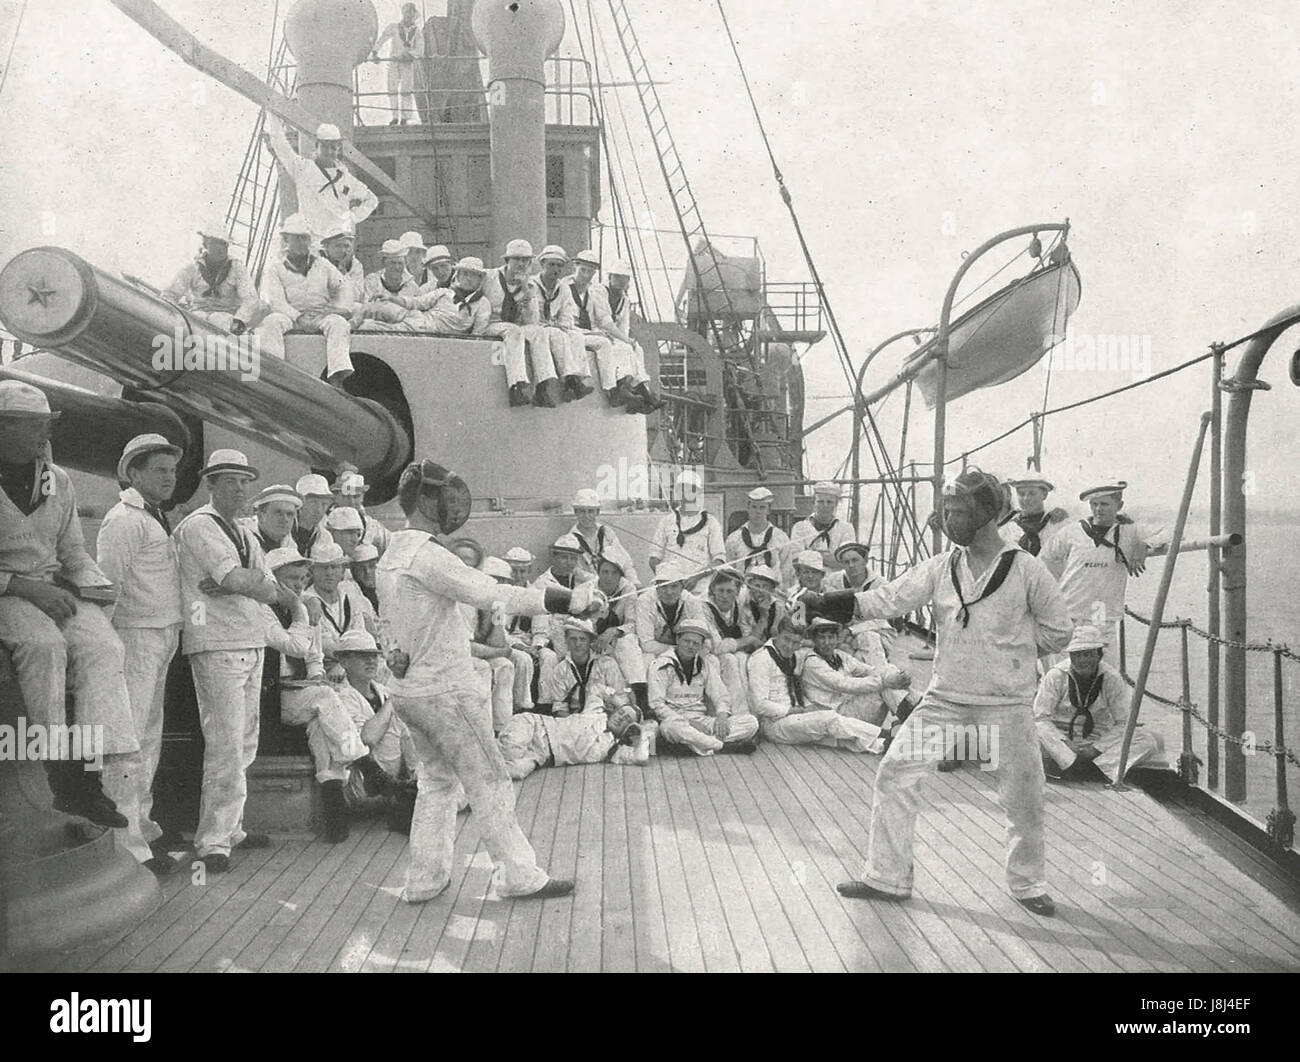 Watching a fencing bout aboard an American warship, circa 1915 - Stock Image